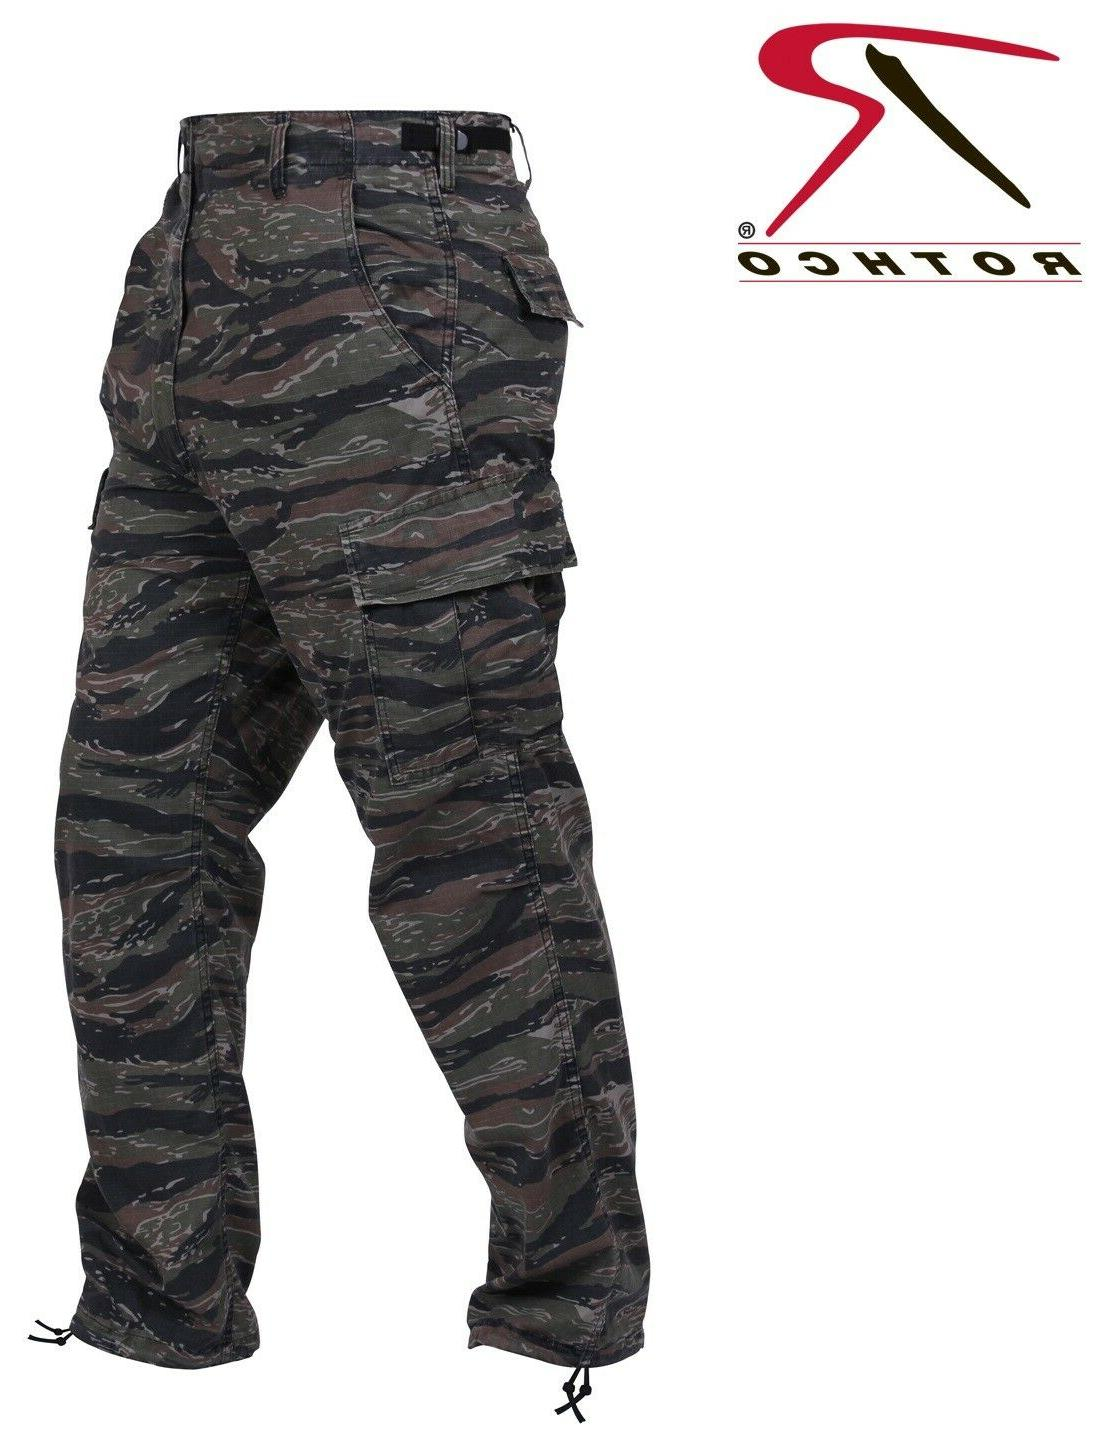 BDU pants military style tiger stripe camo cargo trousers Po